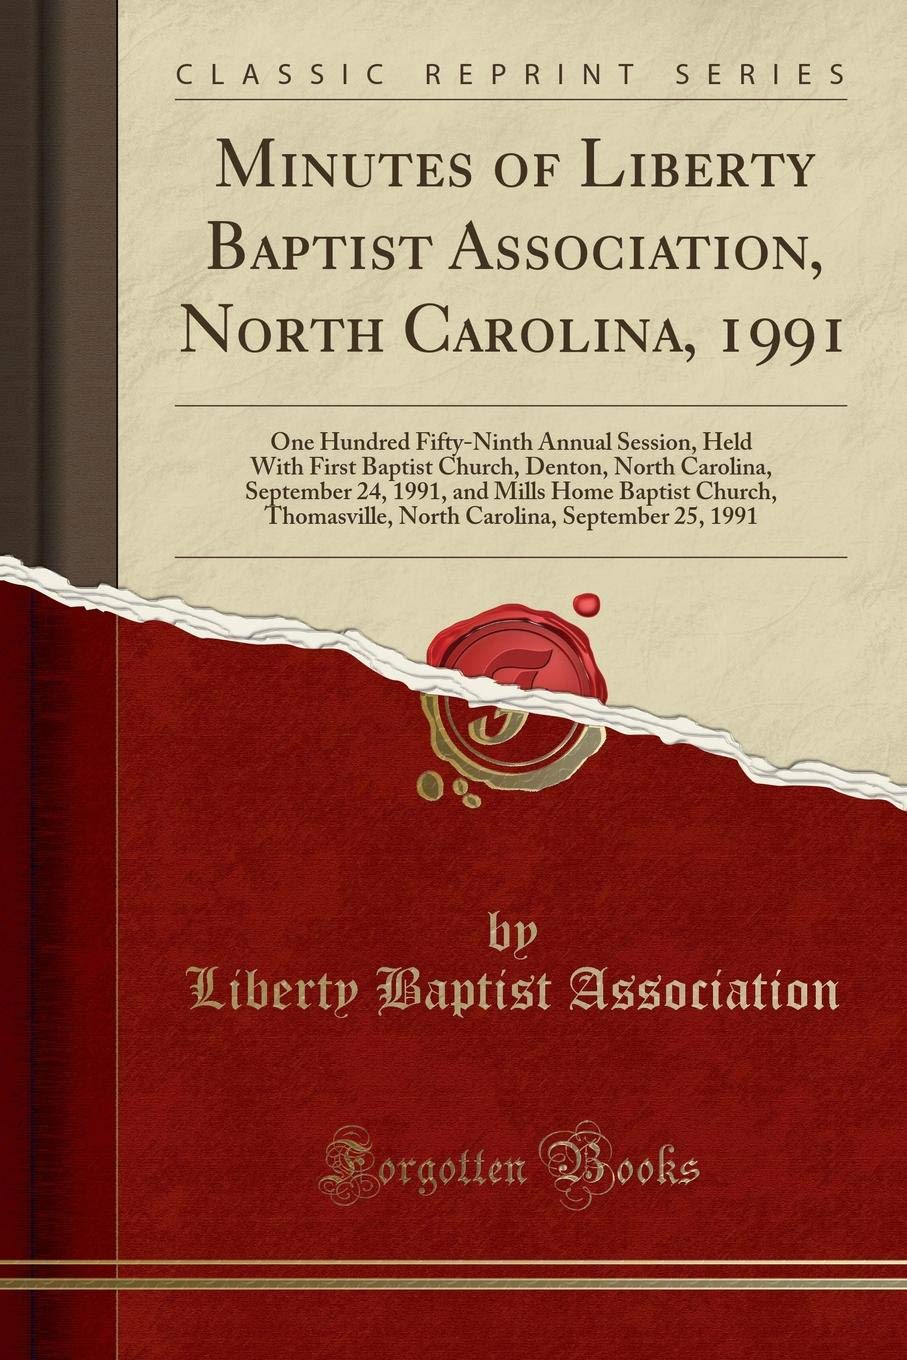 Download Minutes of Liberty Baptist Association, North Carolina, 1991: One Hundred Fifty-Ninth Annual Session, Held with First Baptist Church, Denton, North ... North Carolina, September 25, 199 ebook